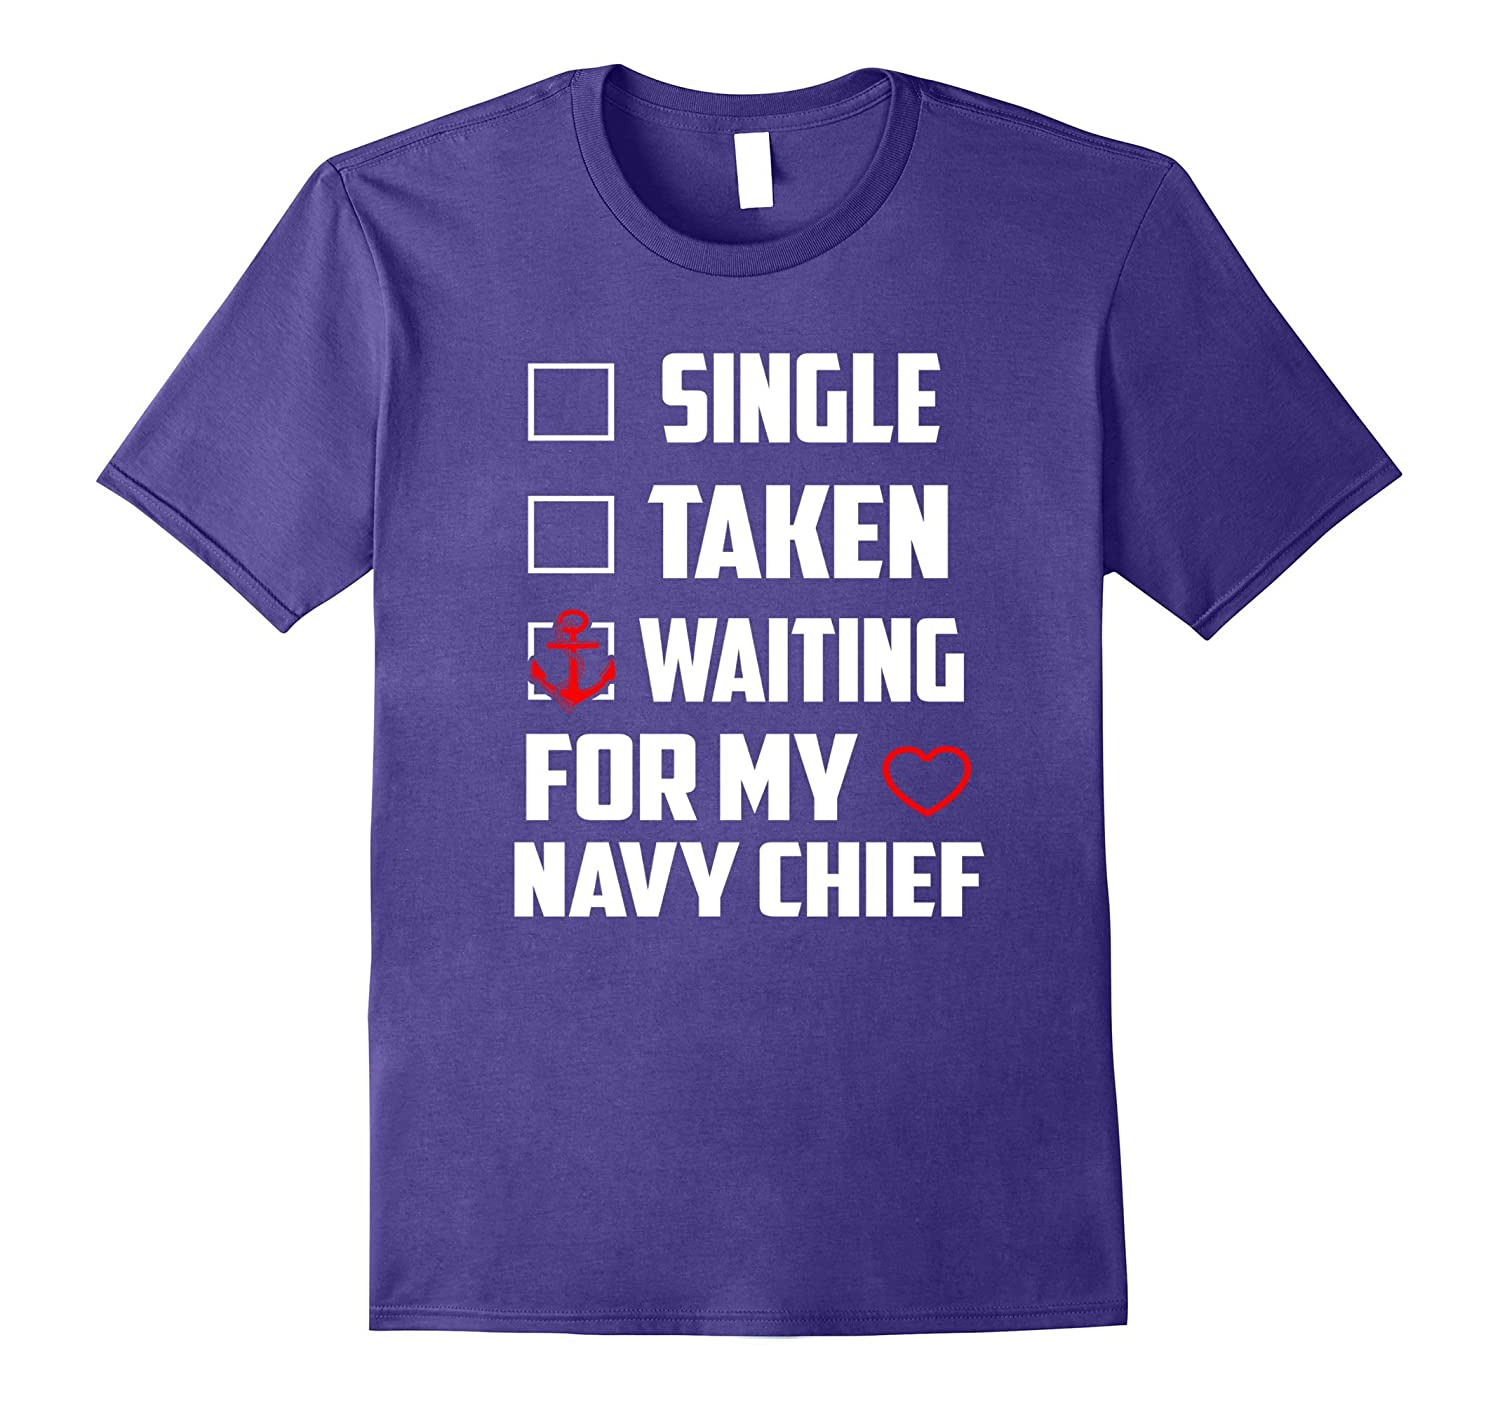 Navy chief shirt , single taken waiting for my navy chief-BN